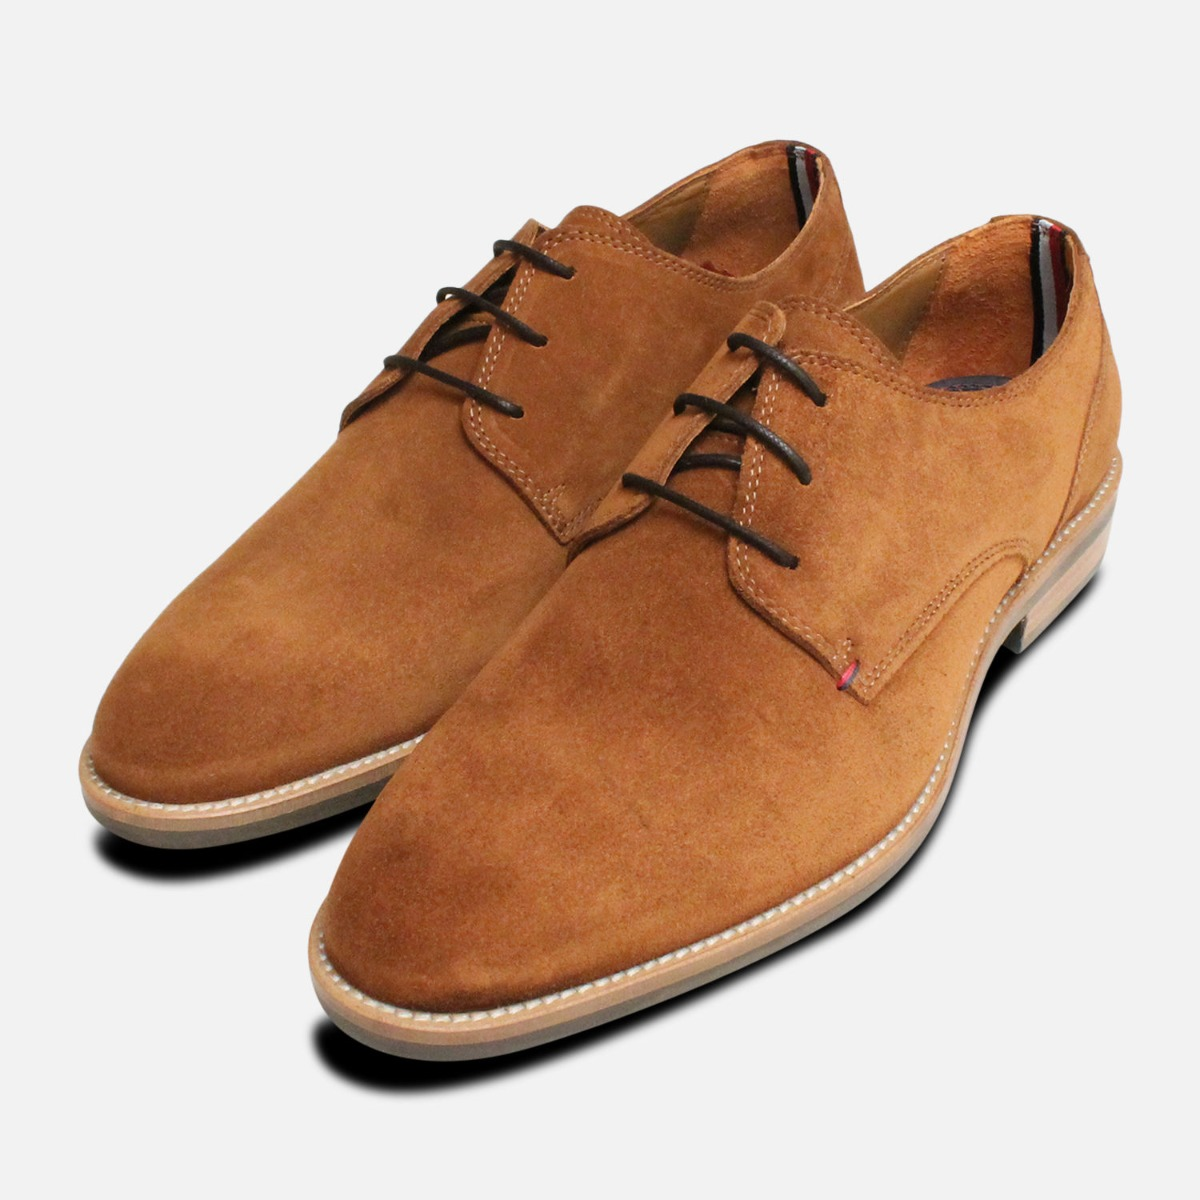 04260dfb9 Tommy Hilfiger Cognac Suede Mens Daytona Shoes